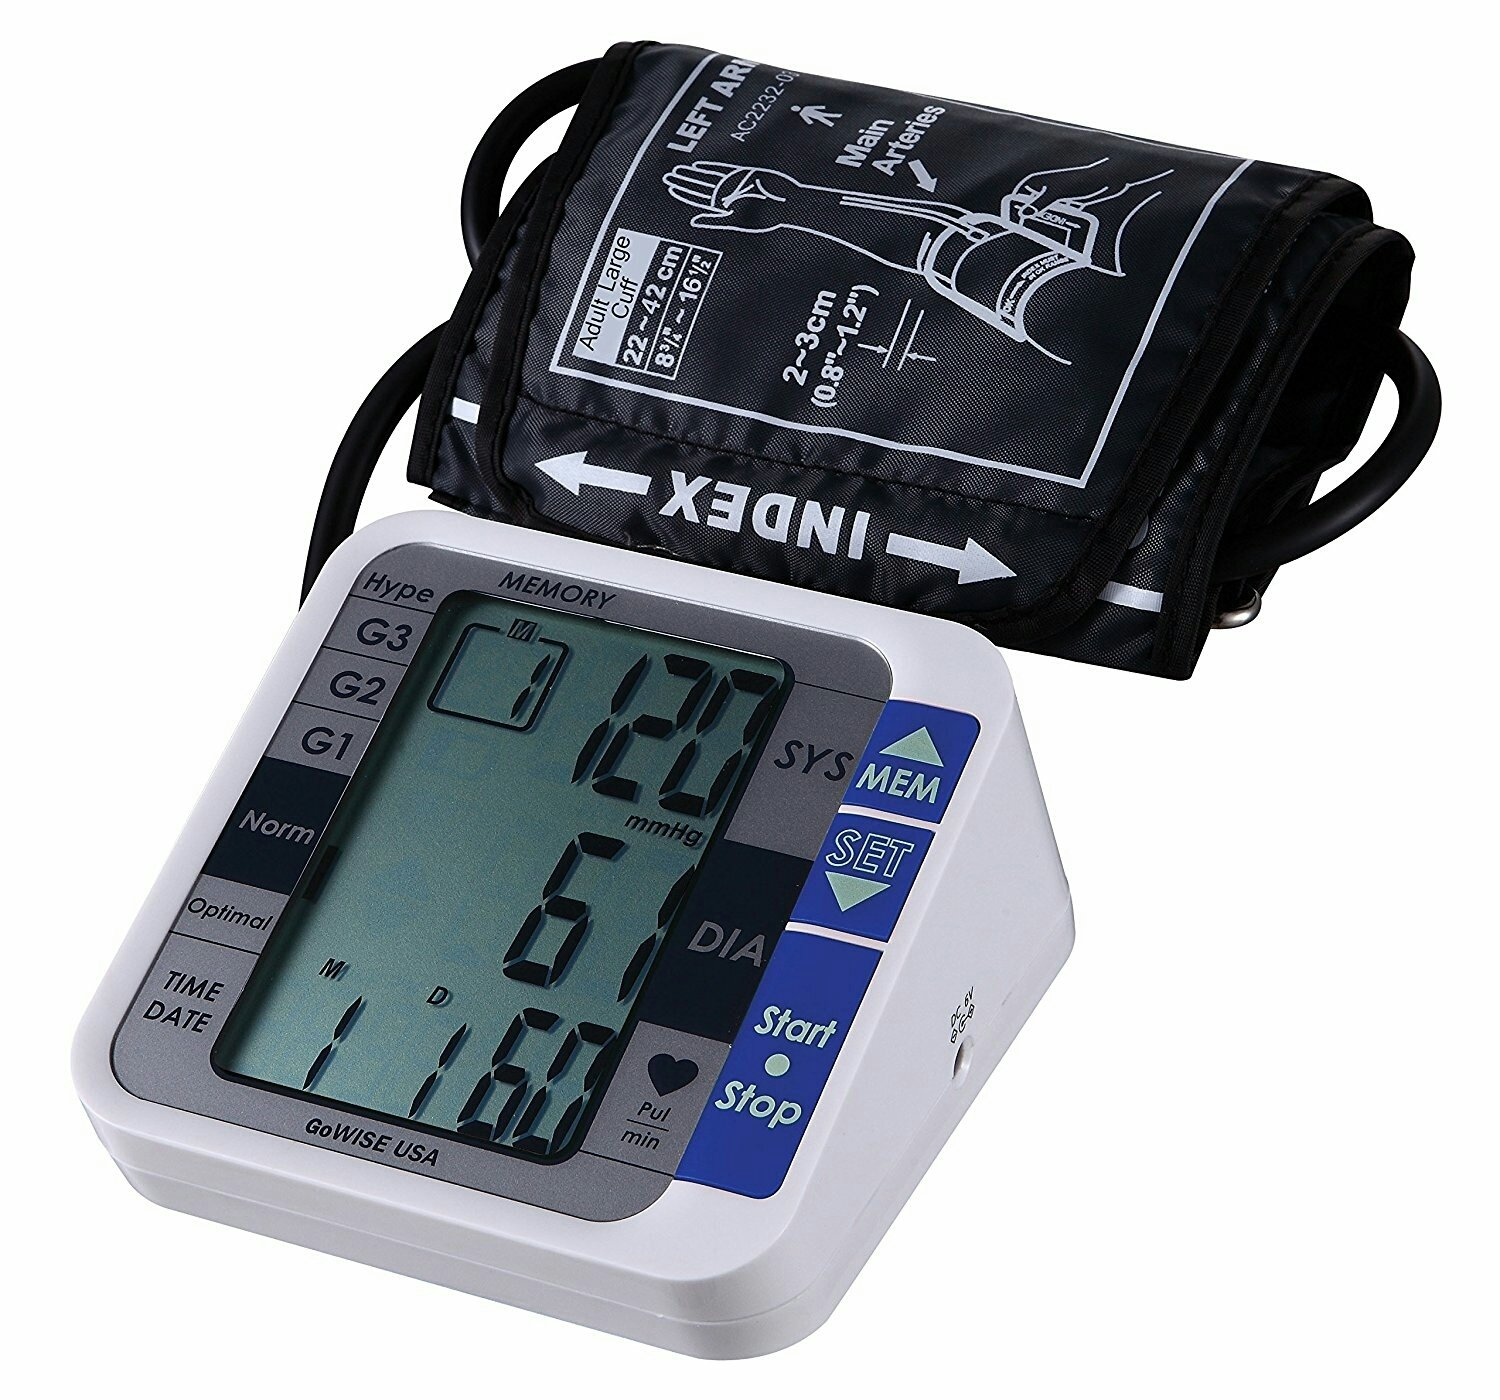 Tensiometre Digital - Digital Upper Arm Blood Pressure Monitor with Hypertension Risk Indicator & Irregular Heartbeat Detection